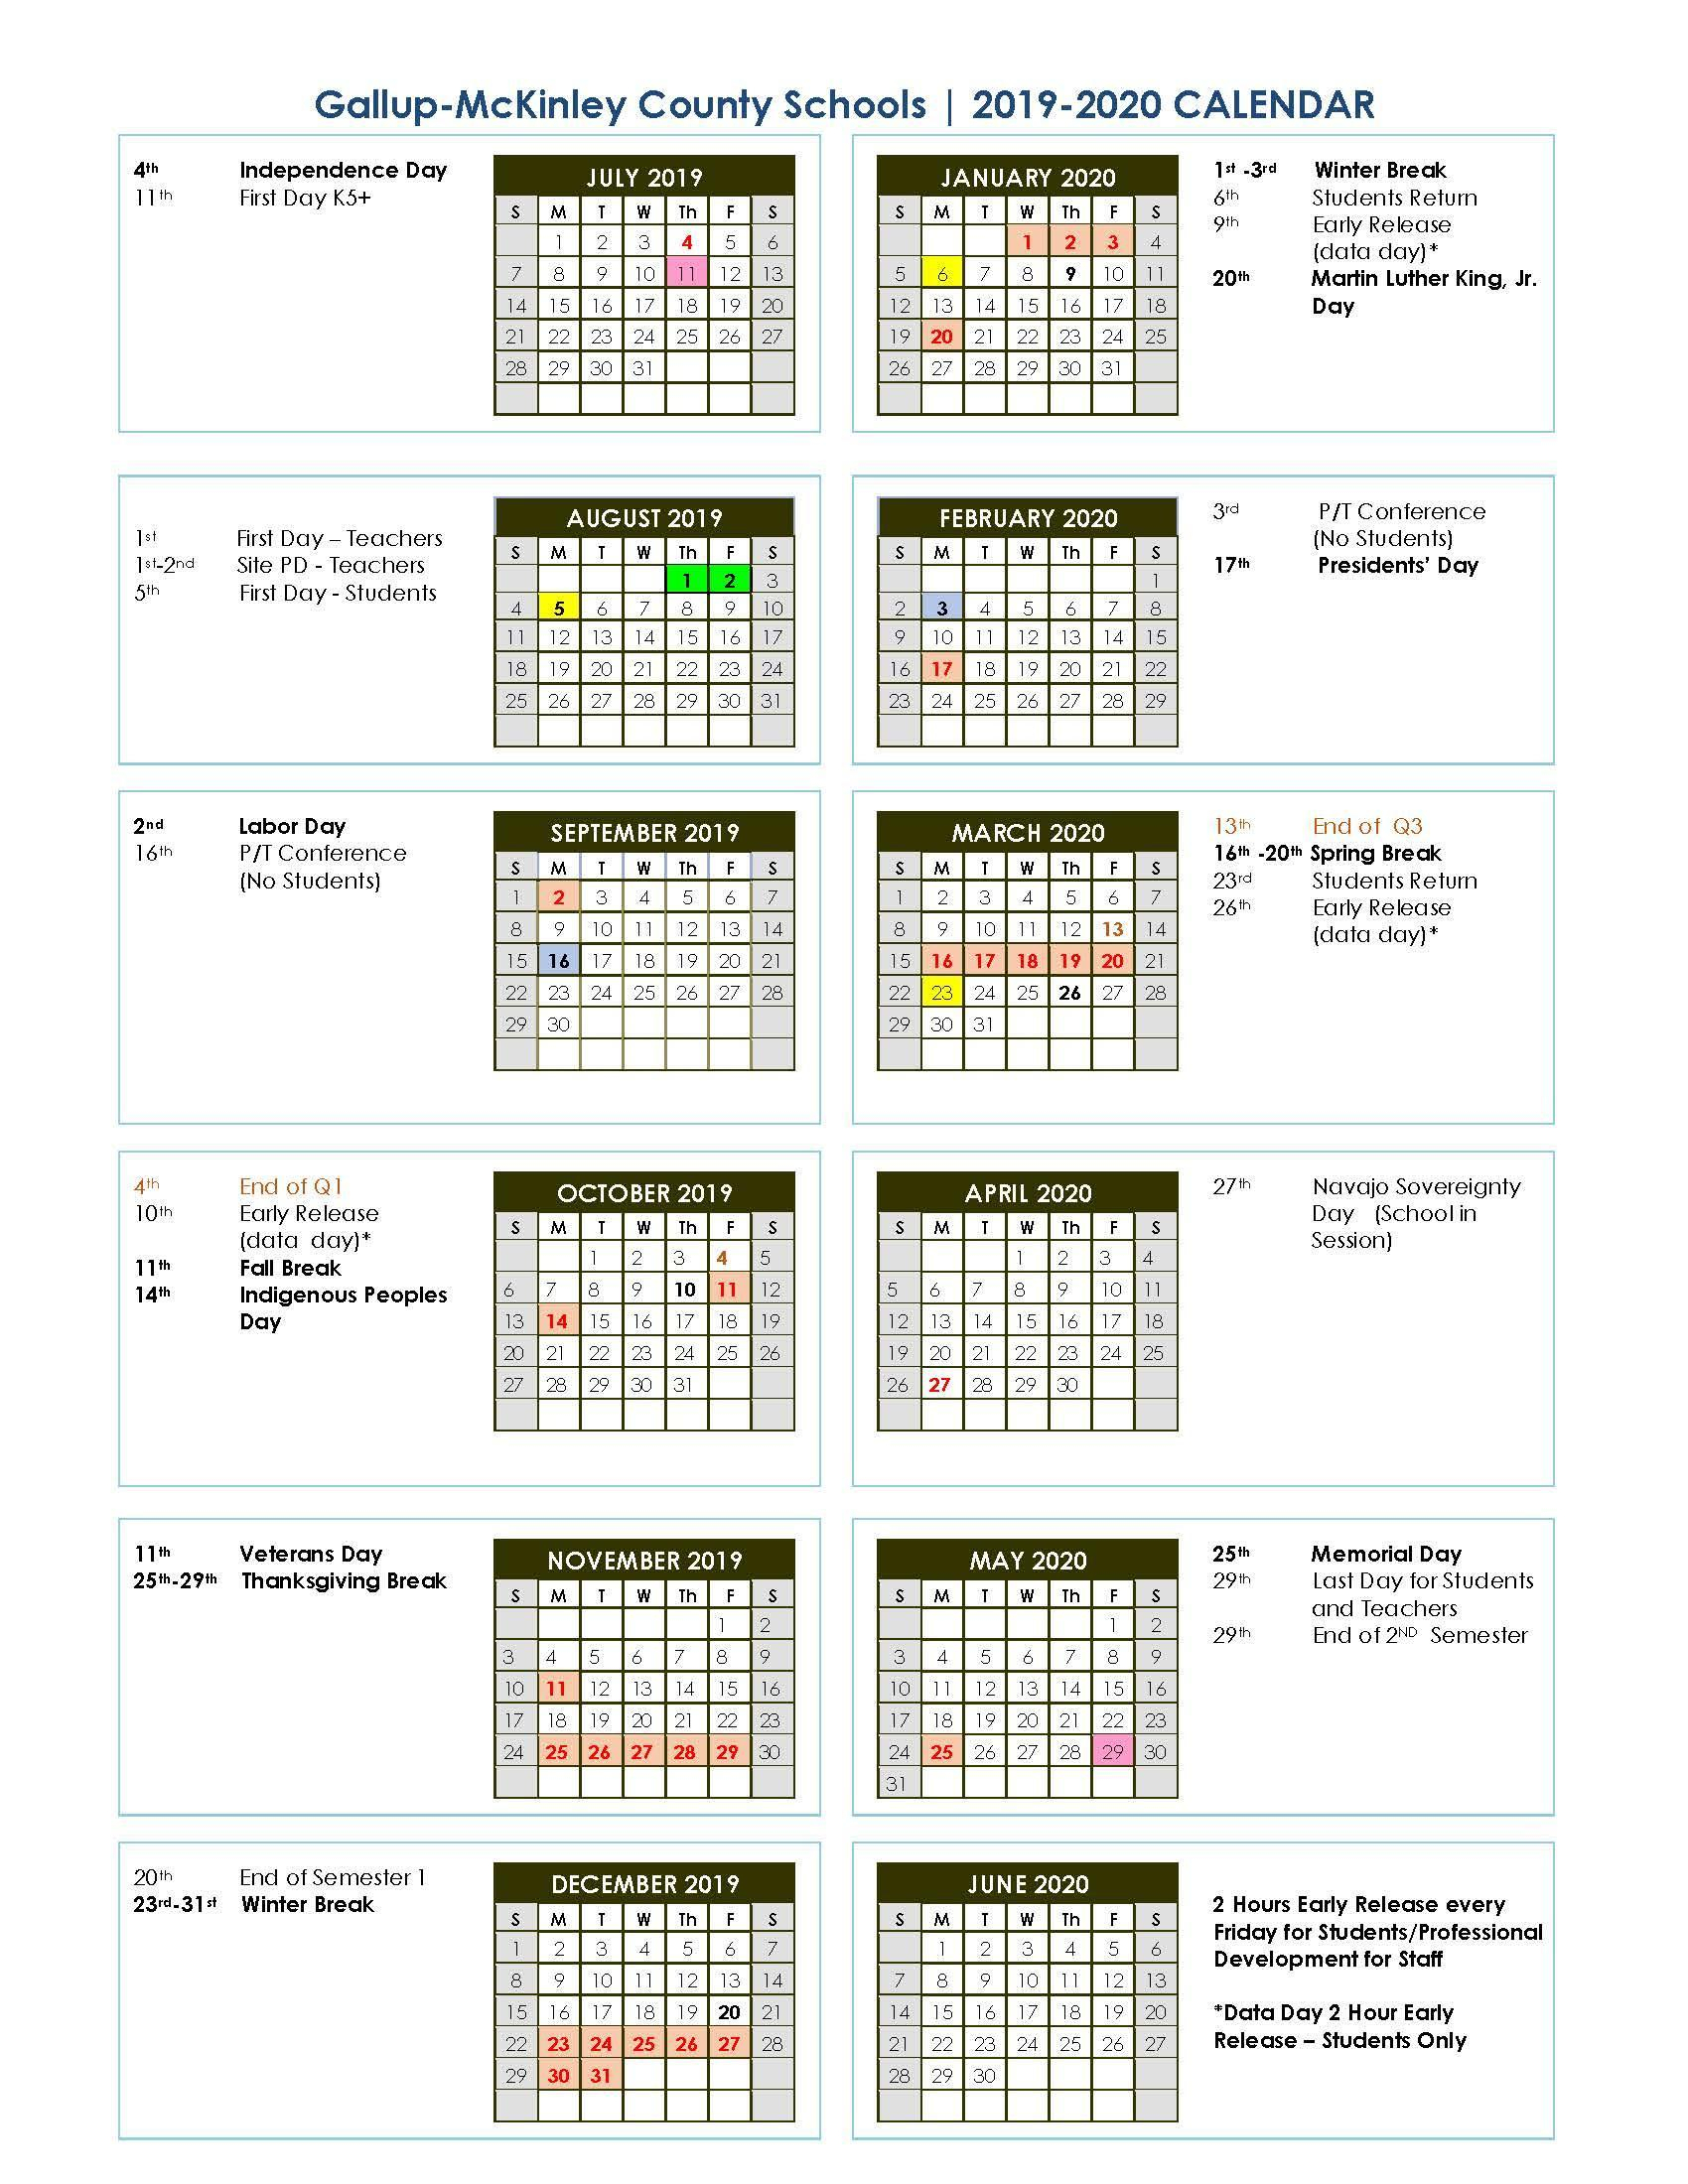 District School Year Calendargraduation Dates – Parents pertaining to 1991 Calendar Year